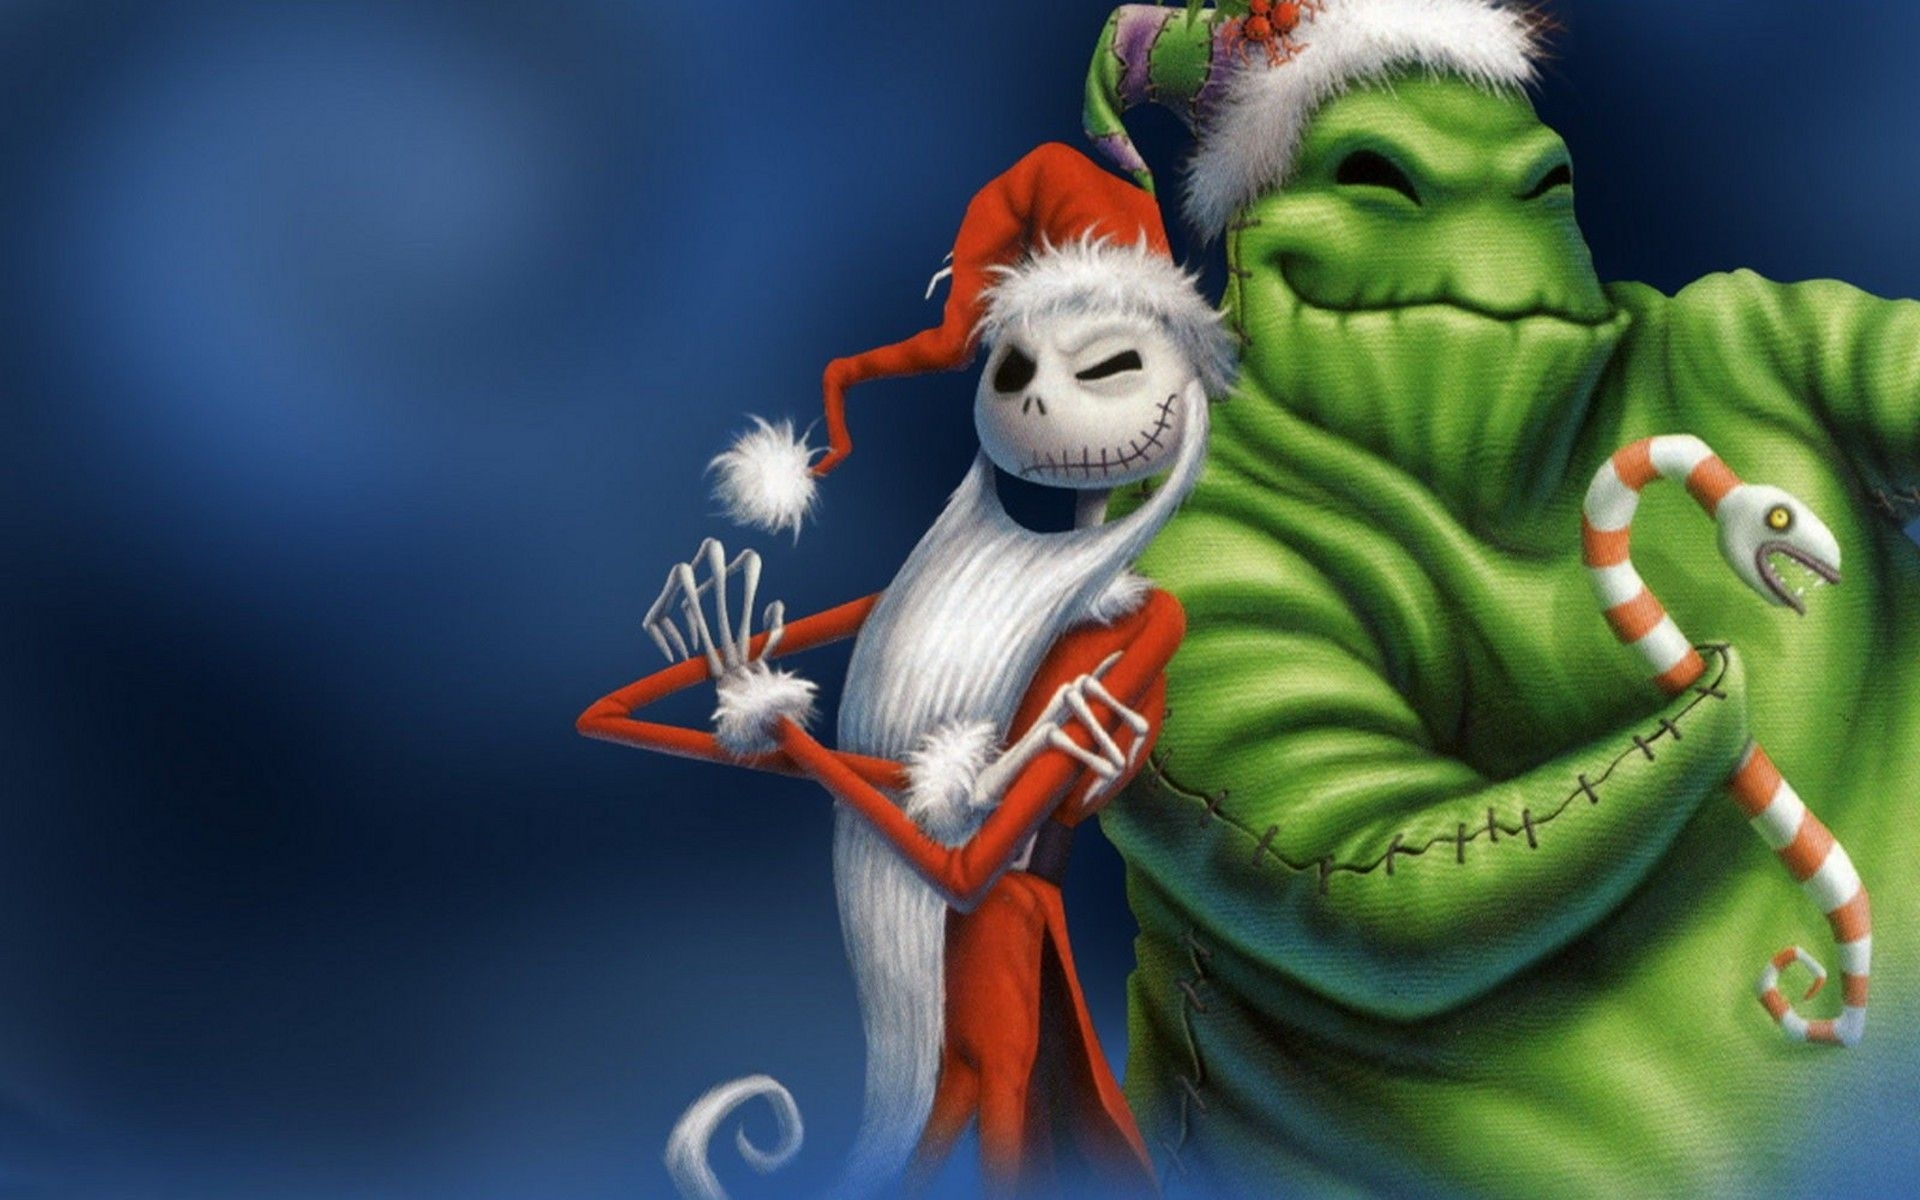 nightmare before christmas wallpapers hd | wallpapers, backgrounds